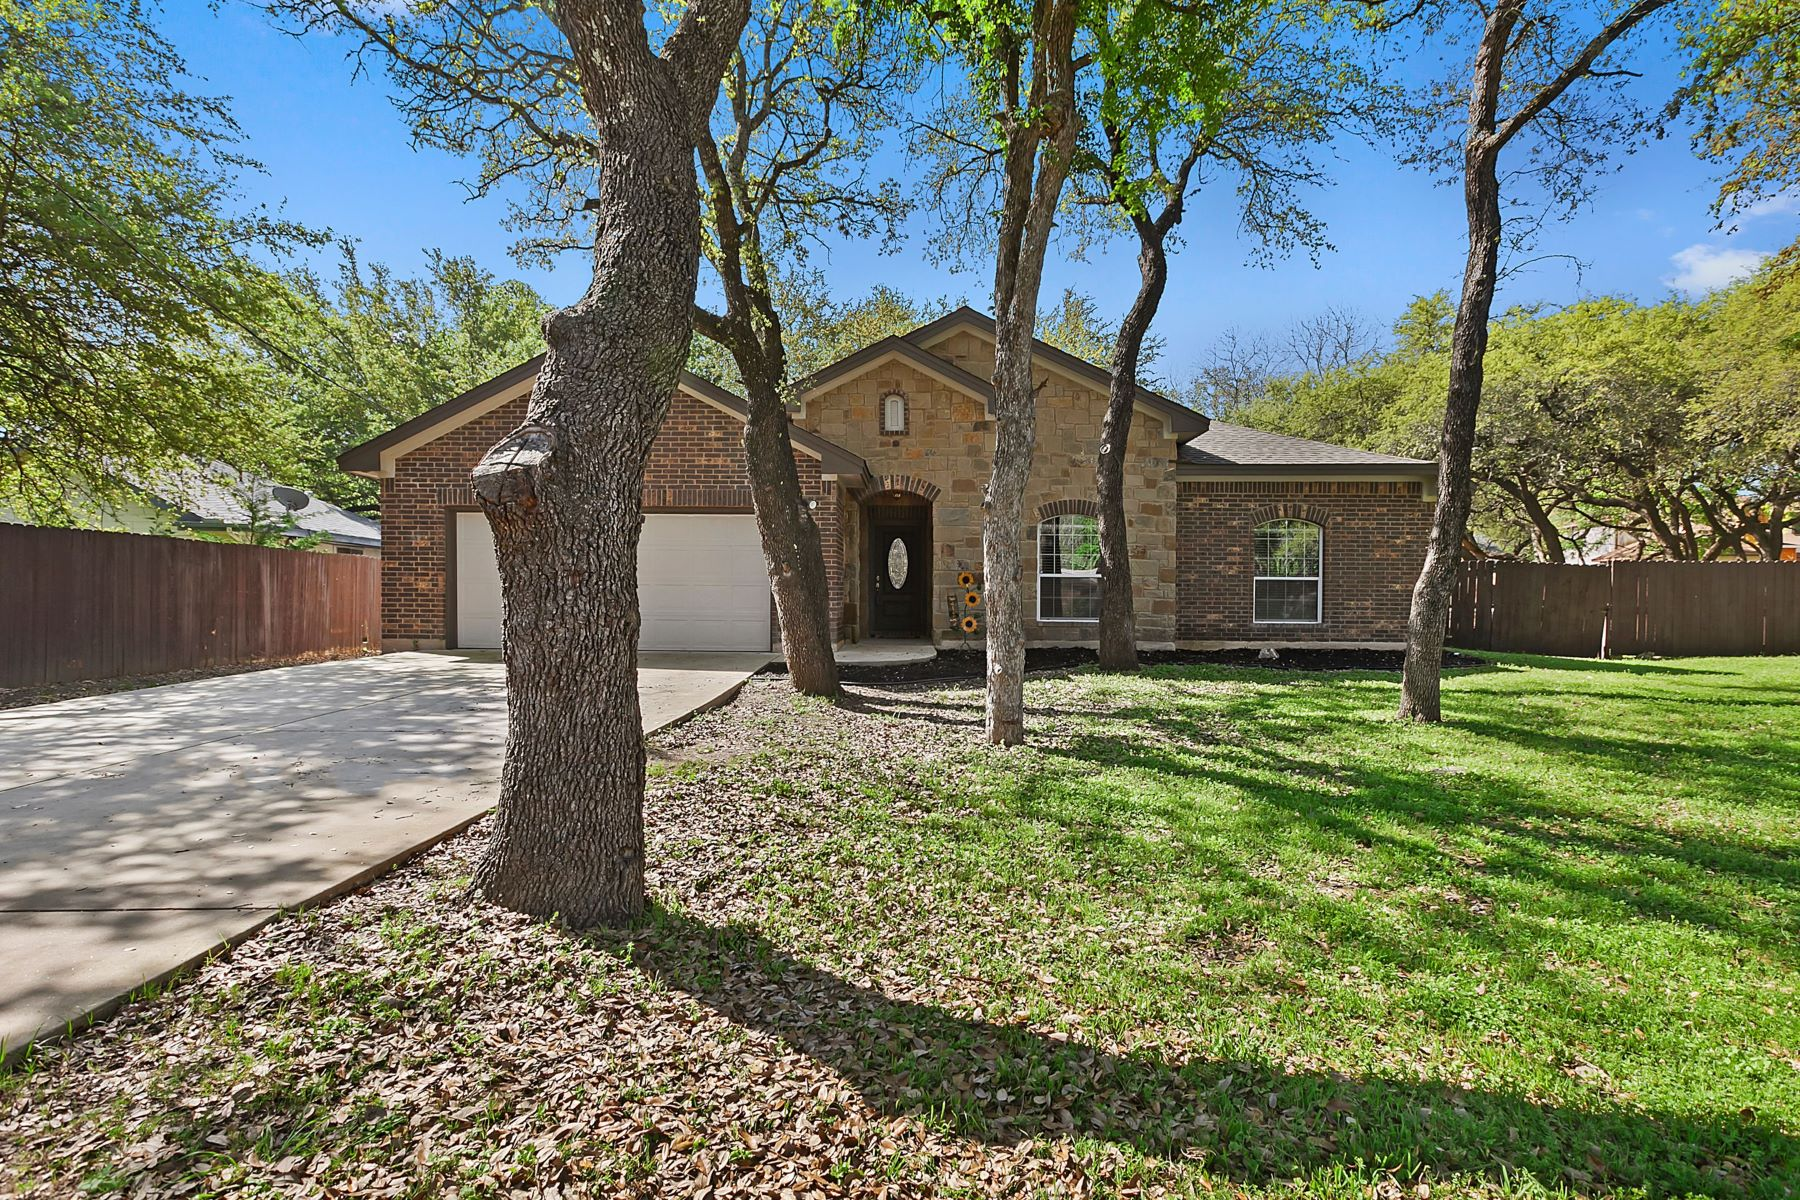 Single Family Homes for Sale at 602 Wicklow Drive, Leander, TX 78641 602 Wicklow Drive Leander, Texas 78641 United States